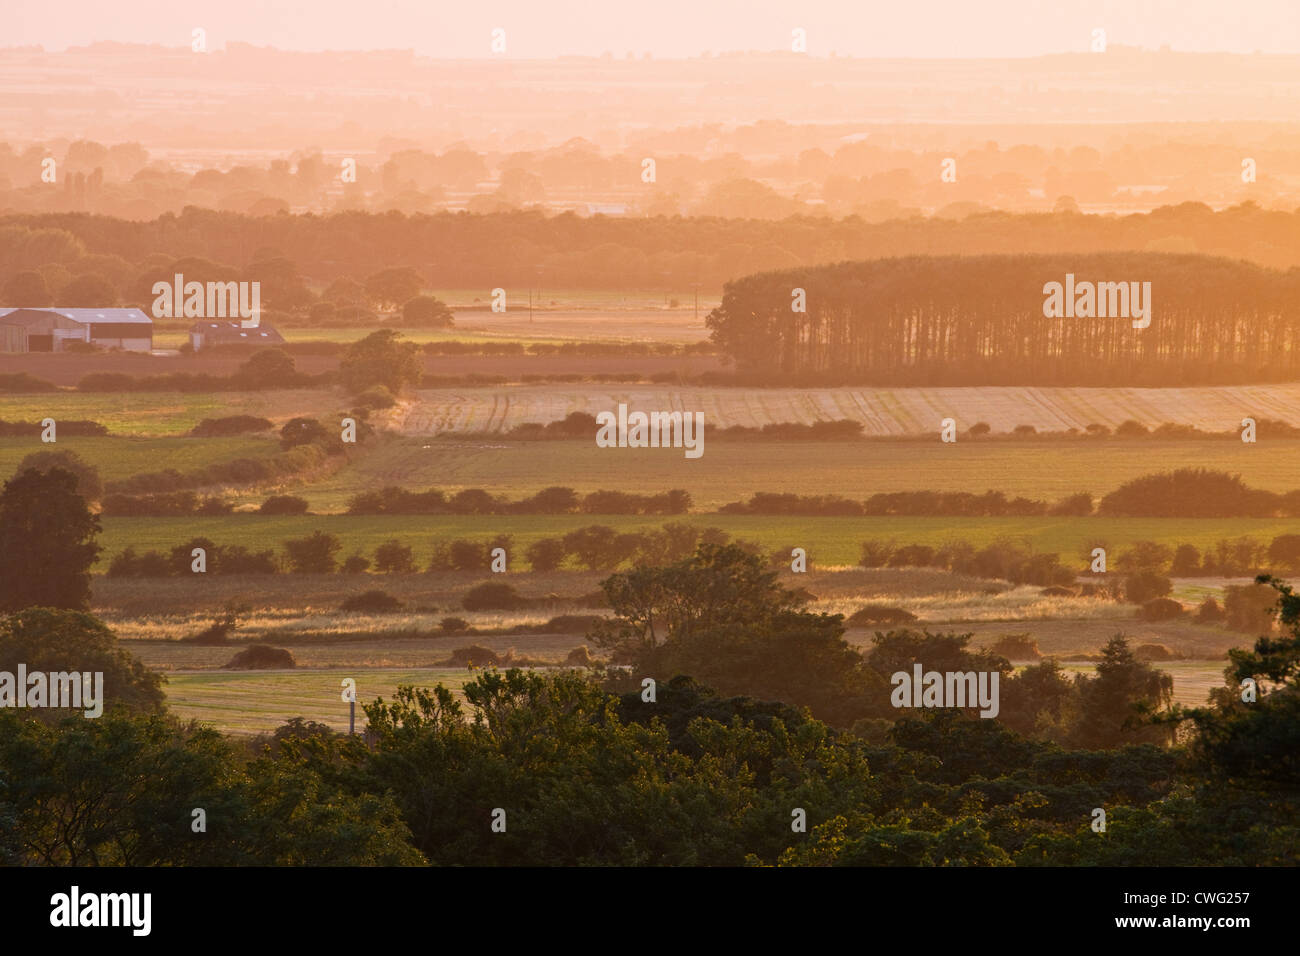 The view from All Saints' Church or the Ramblers Church in Walesby in the Lincolnshire Wolds AONB, England - Stock Image